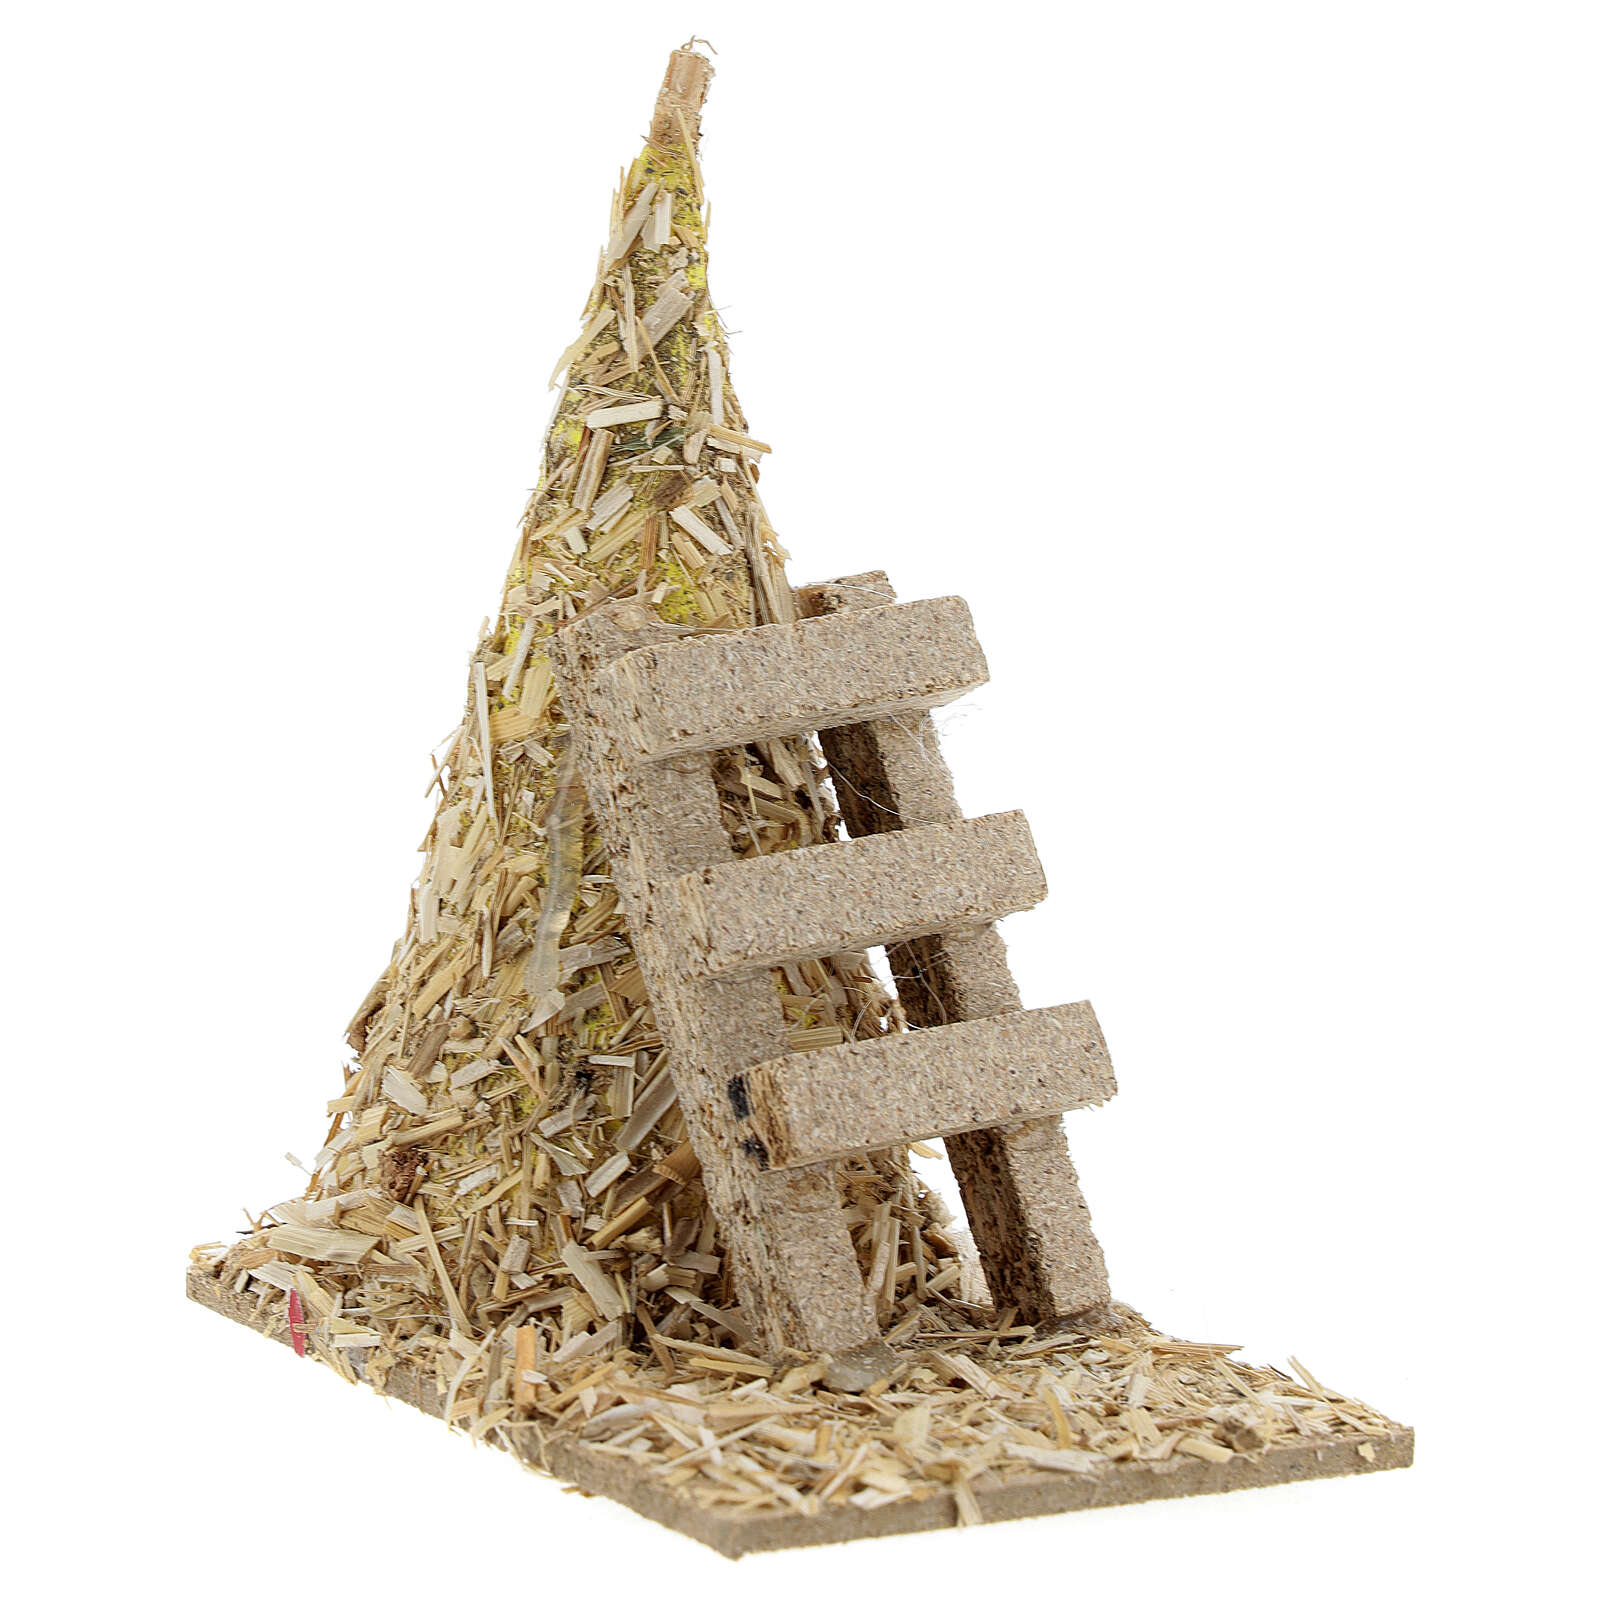 Pile of hay with ladder 12x12x7 cm for Nativity Scene with 8-10 cm figurines 4